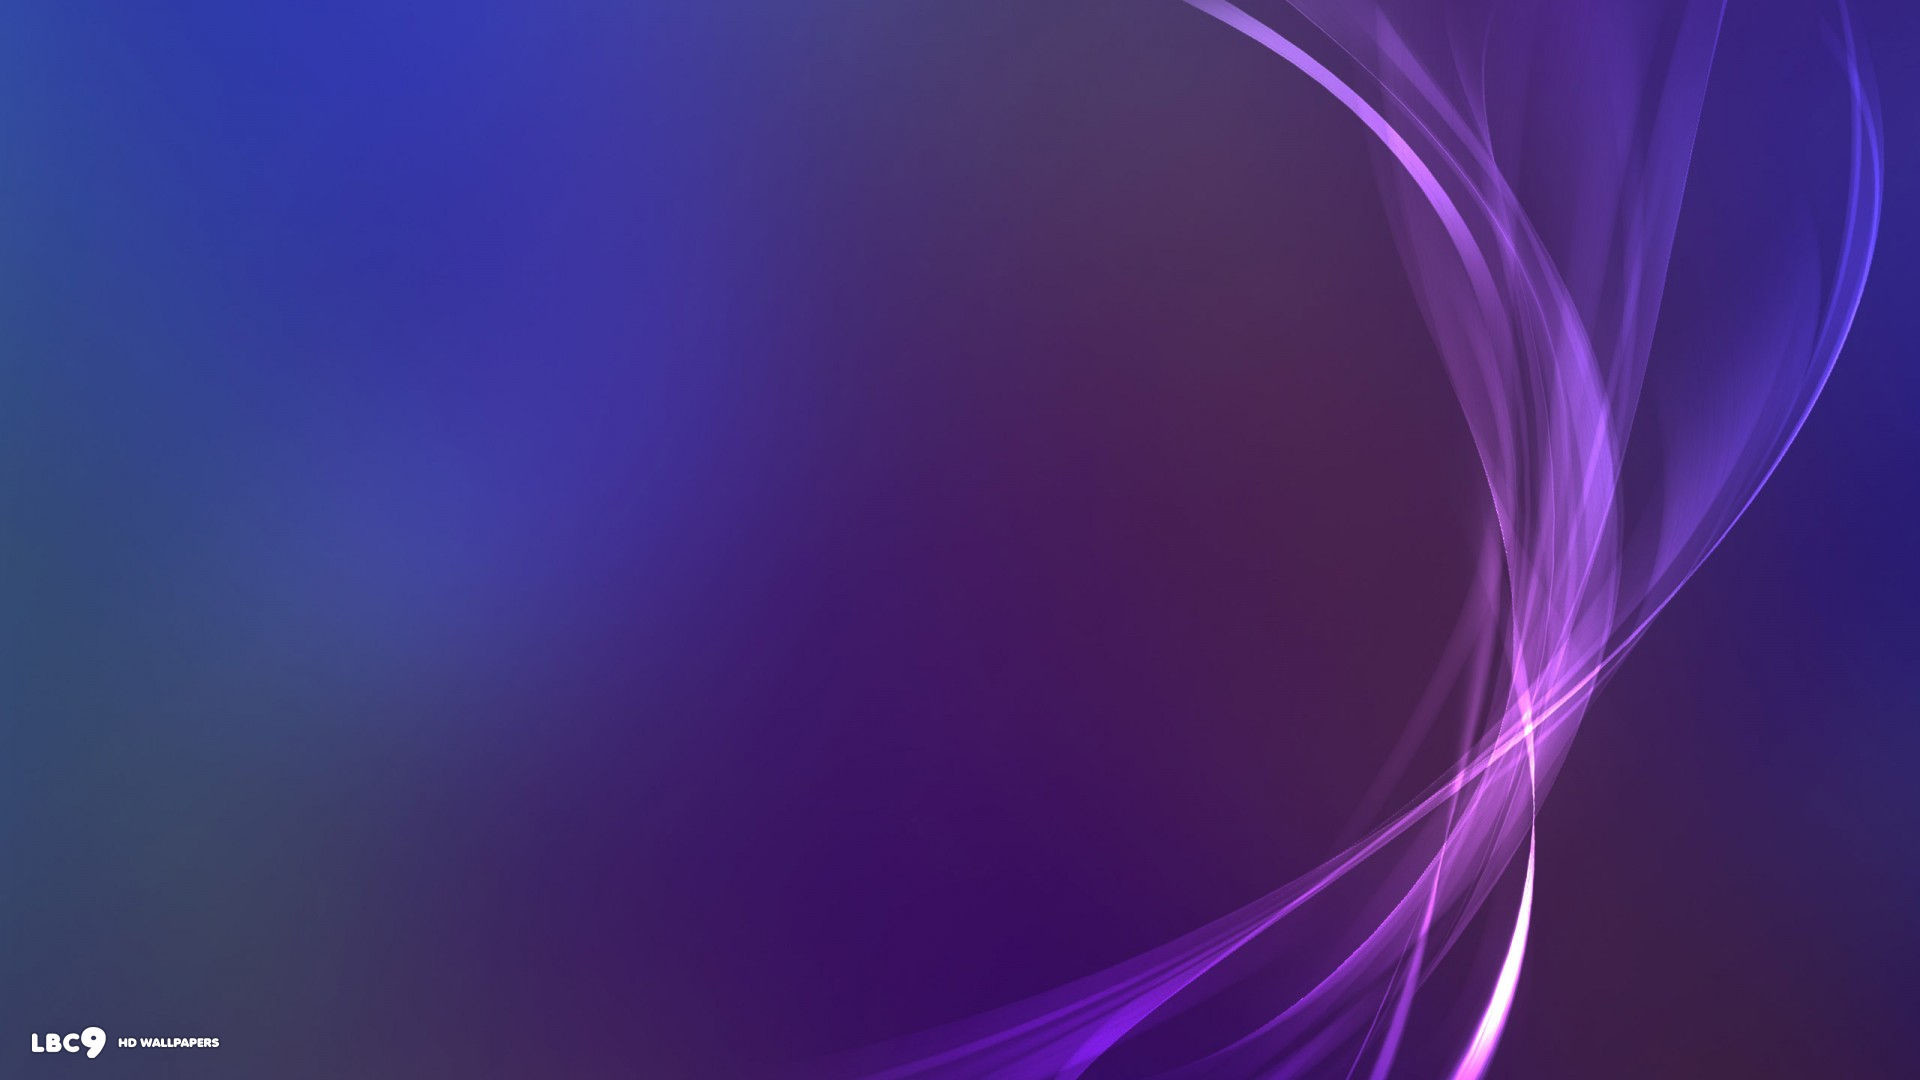 1920x1080 desktop abstract purple wallpaper download